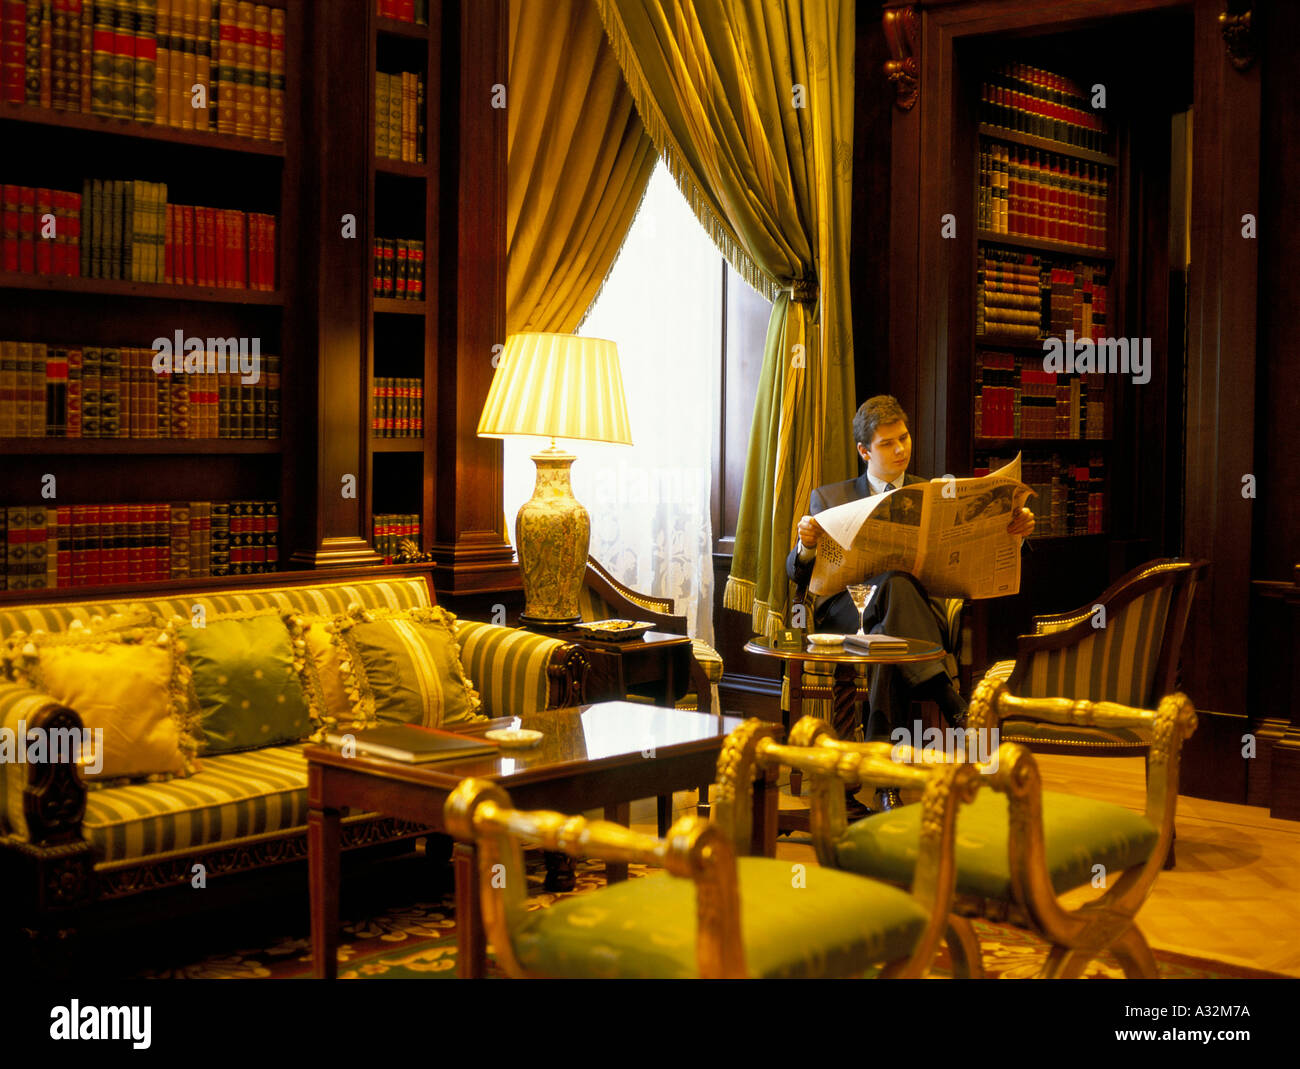 lanesborough hotel Stock Photo